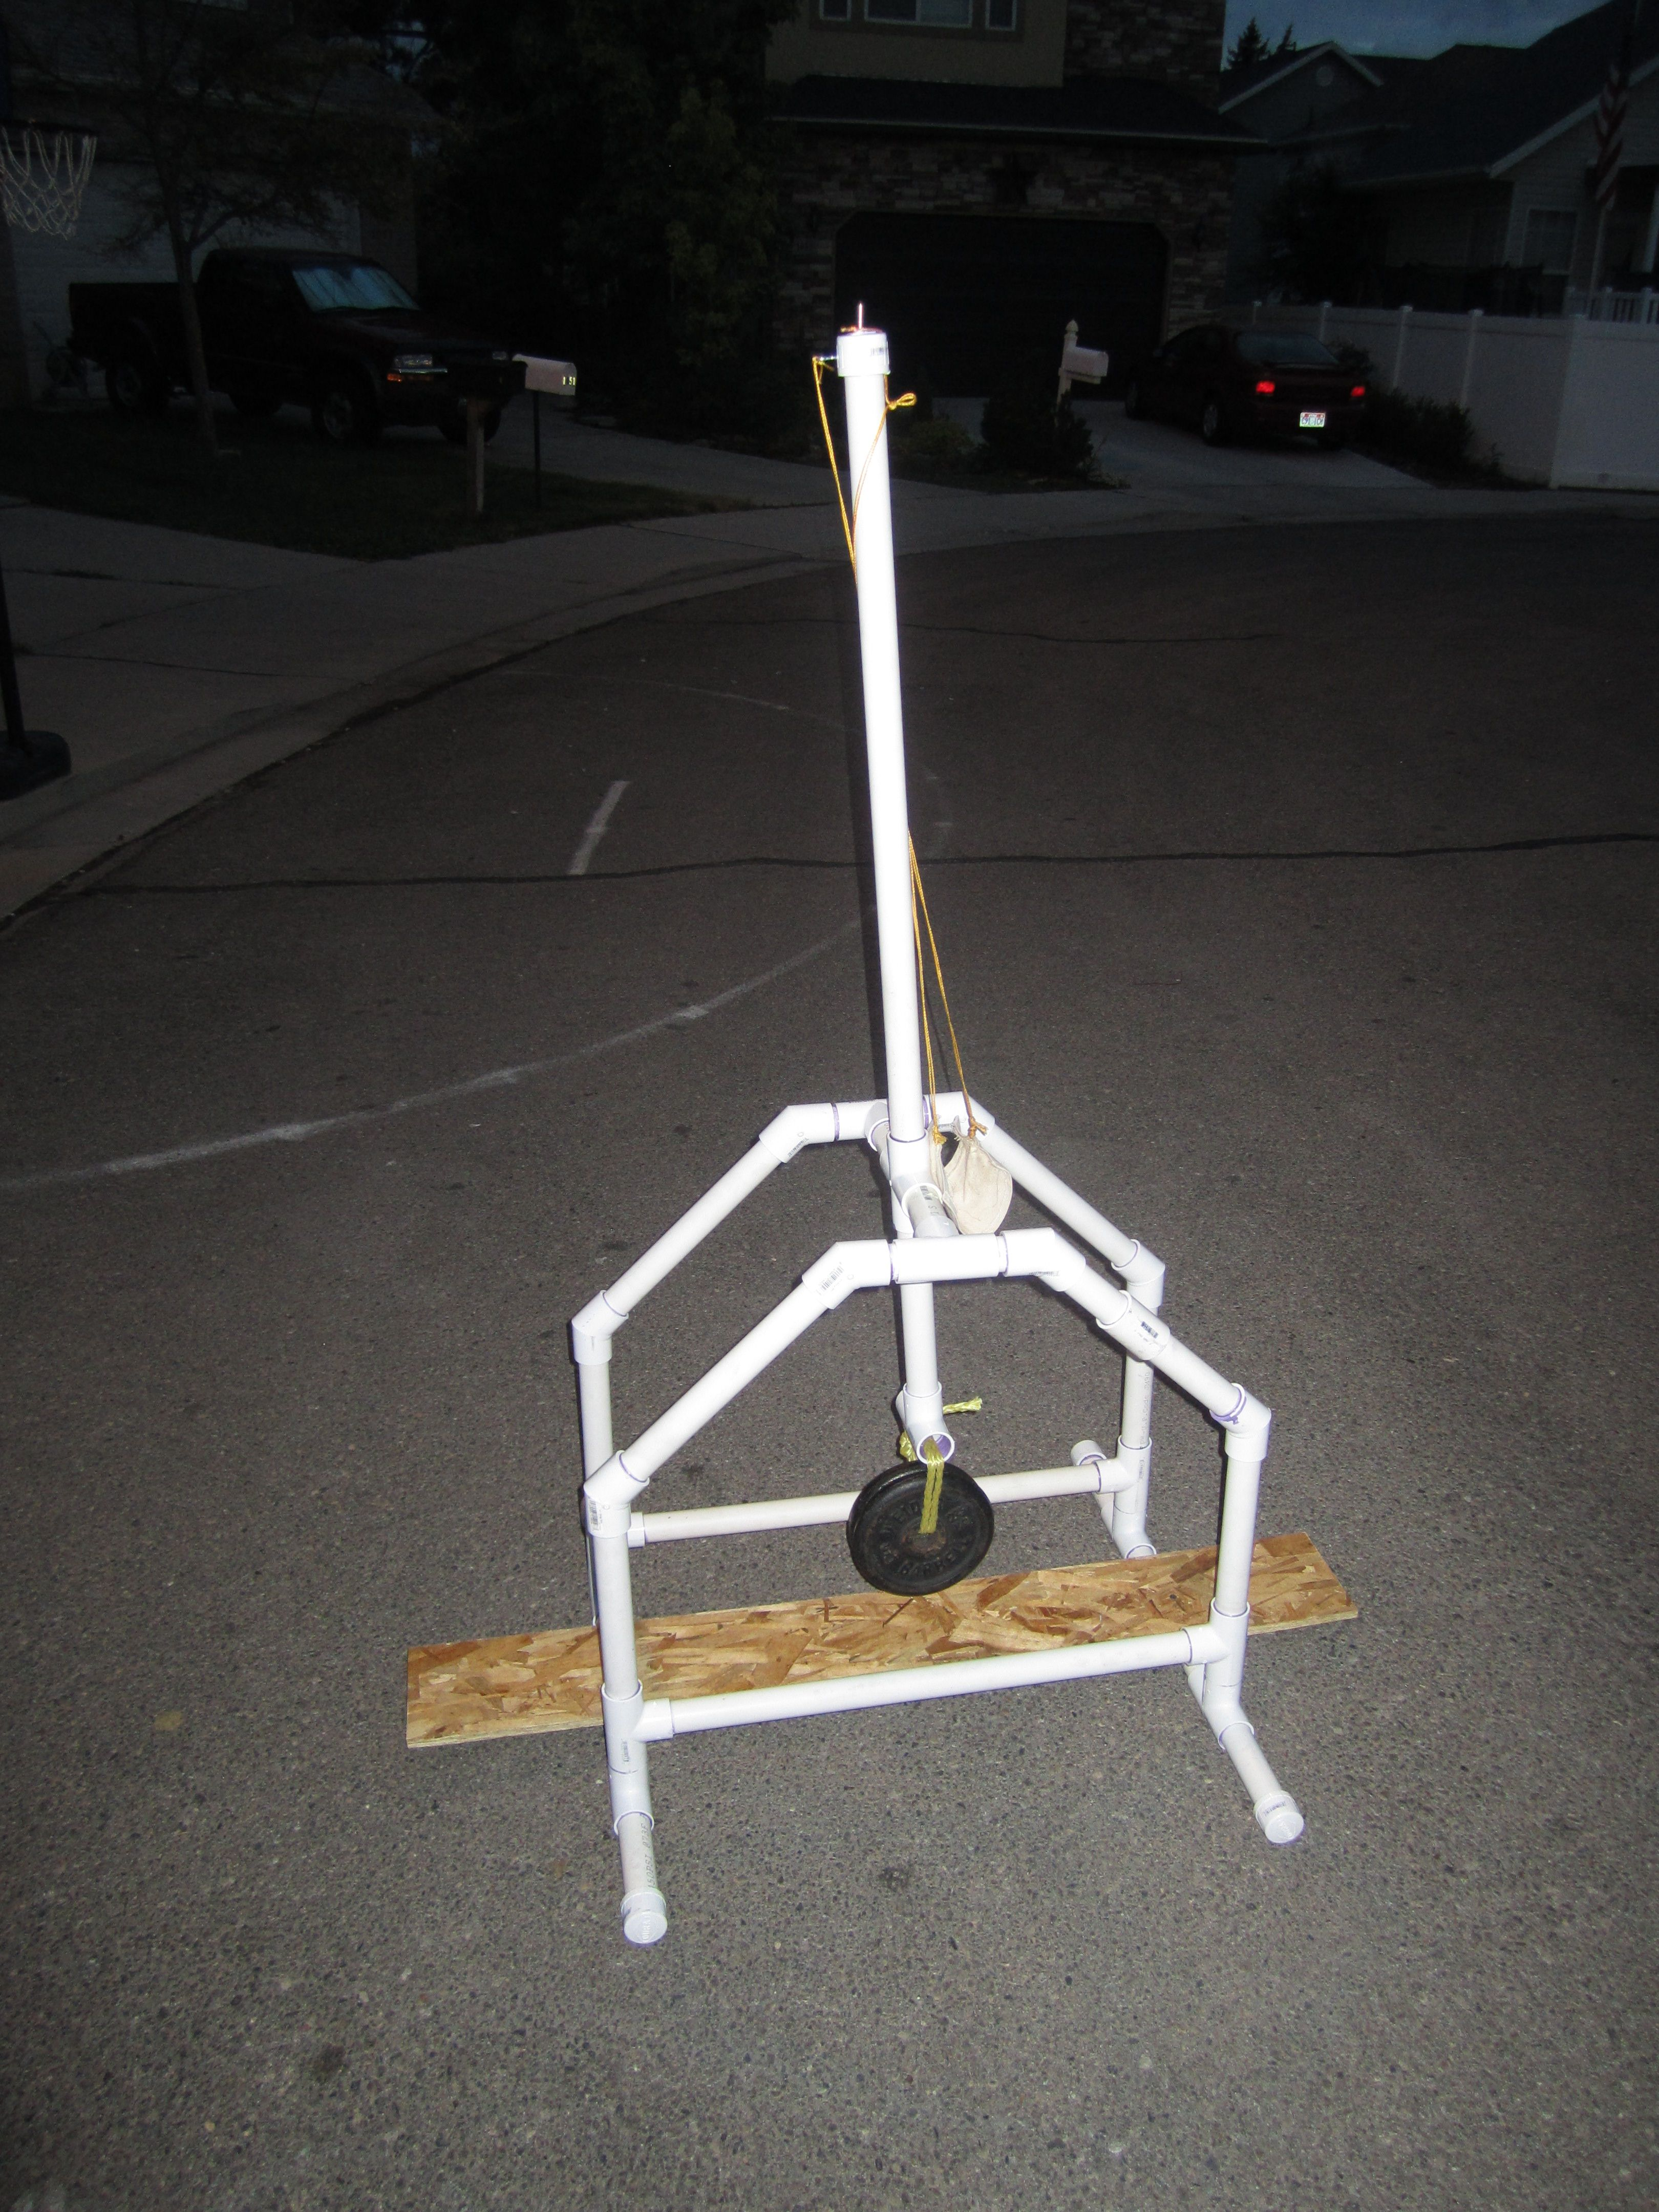 small resolution of pvc trebuchet i built this trebuchet as a summer project the trebuchet arm length ratio is 3 1 the counterweight is 100 1